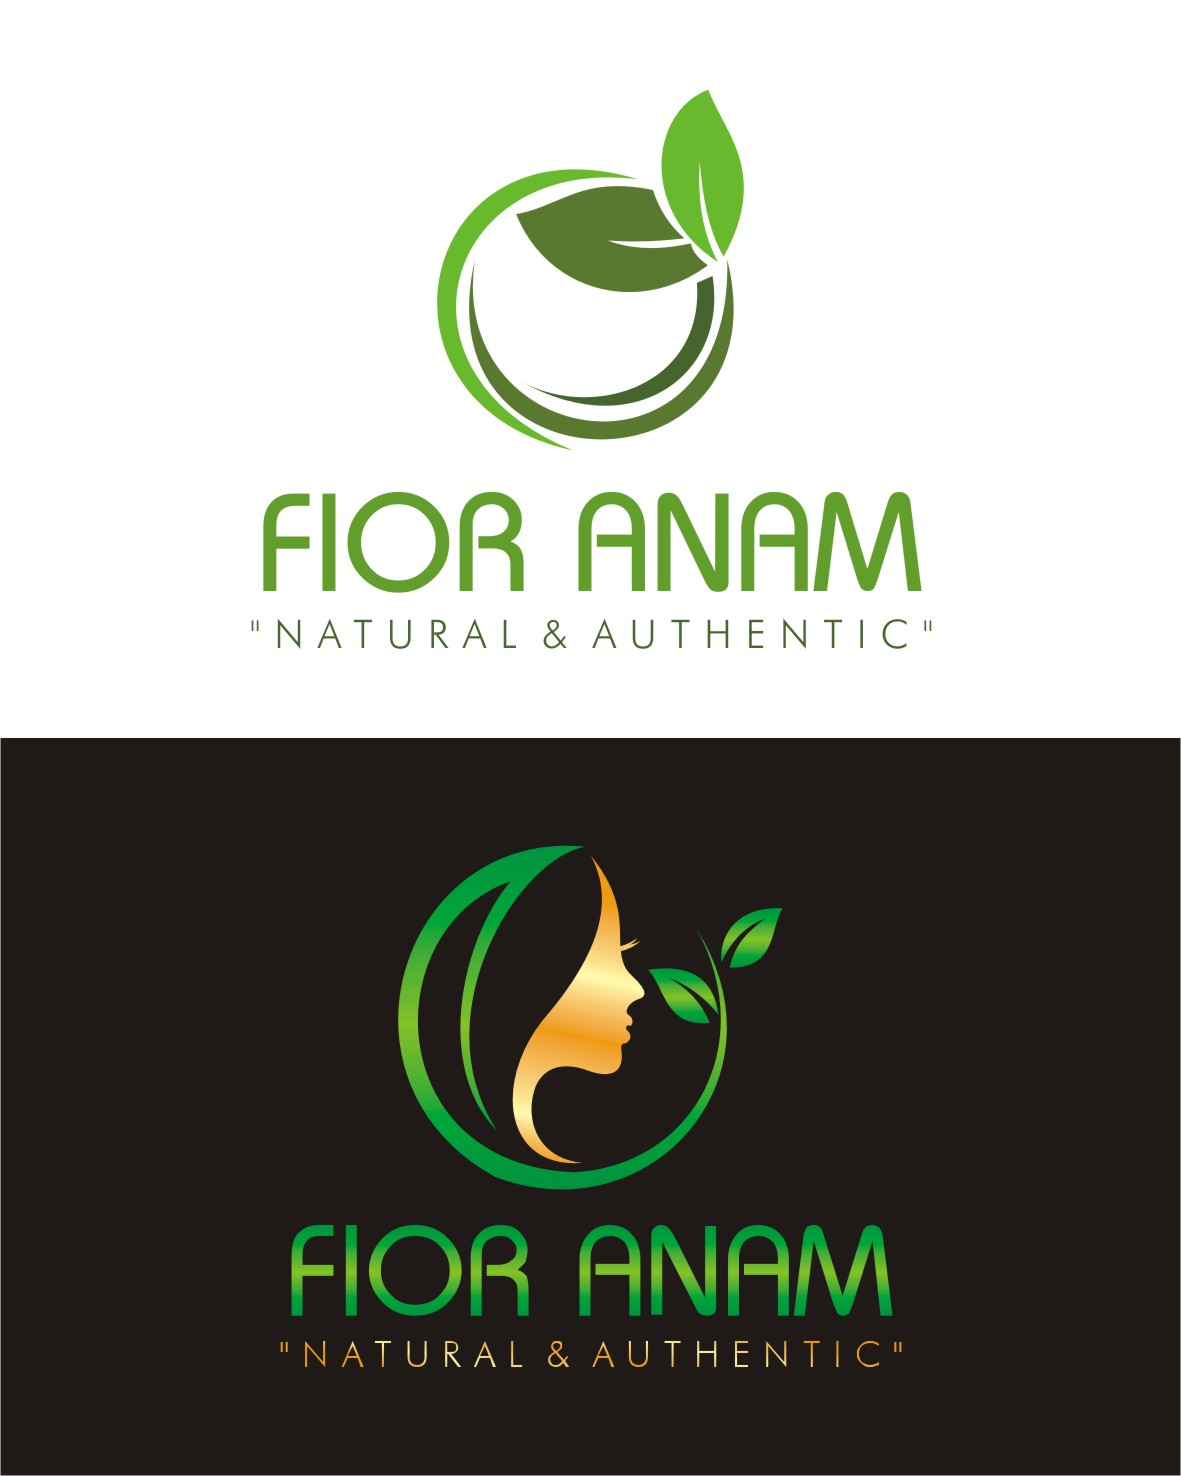 Logo Design by Lynx Graphics - Entry No. 354 in the Logo Design Contest Creative Logo Design for Fior Anam.